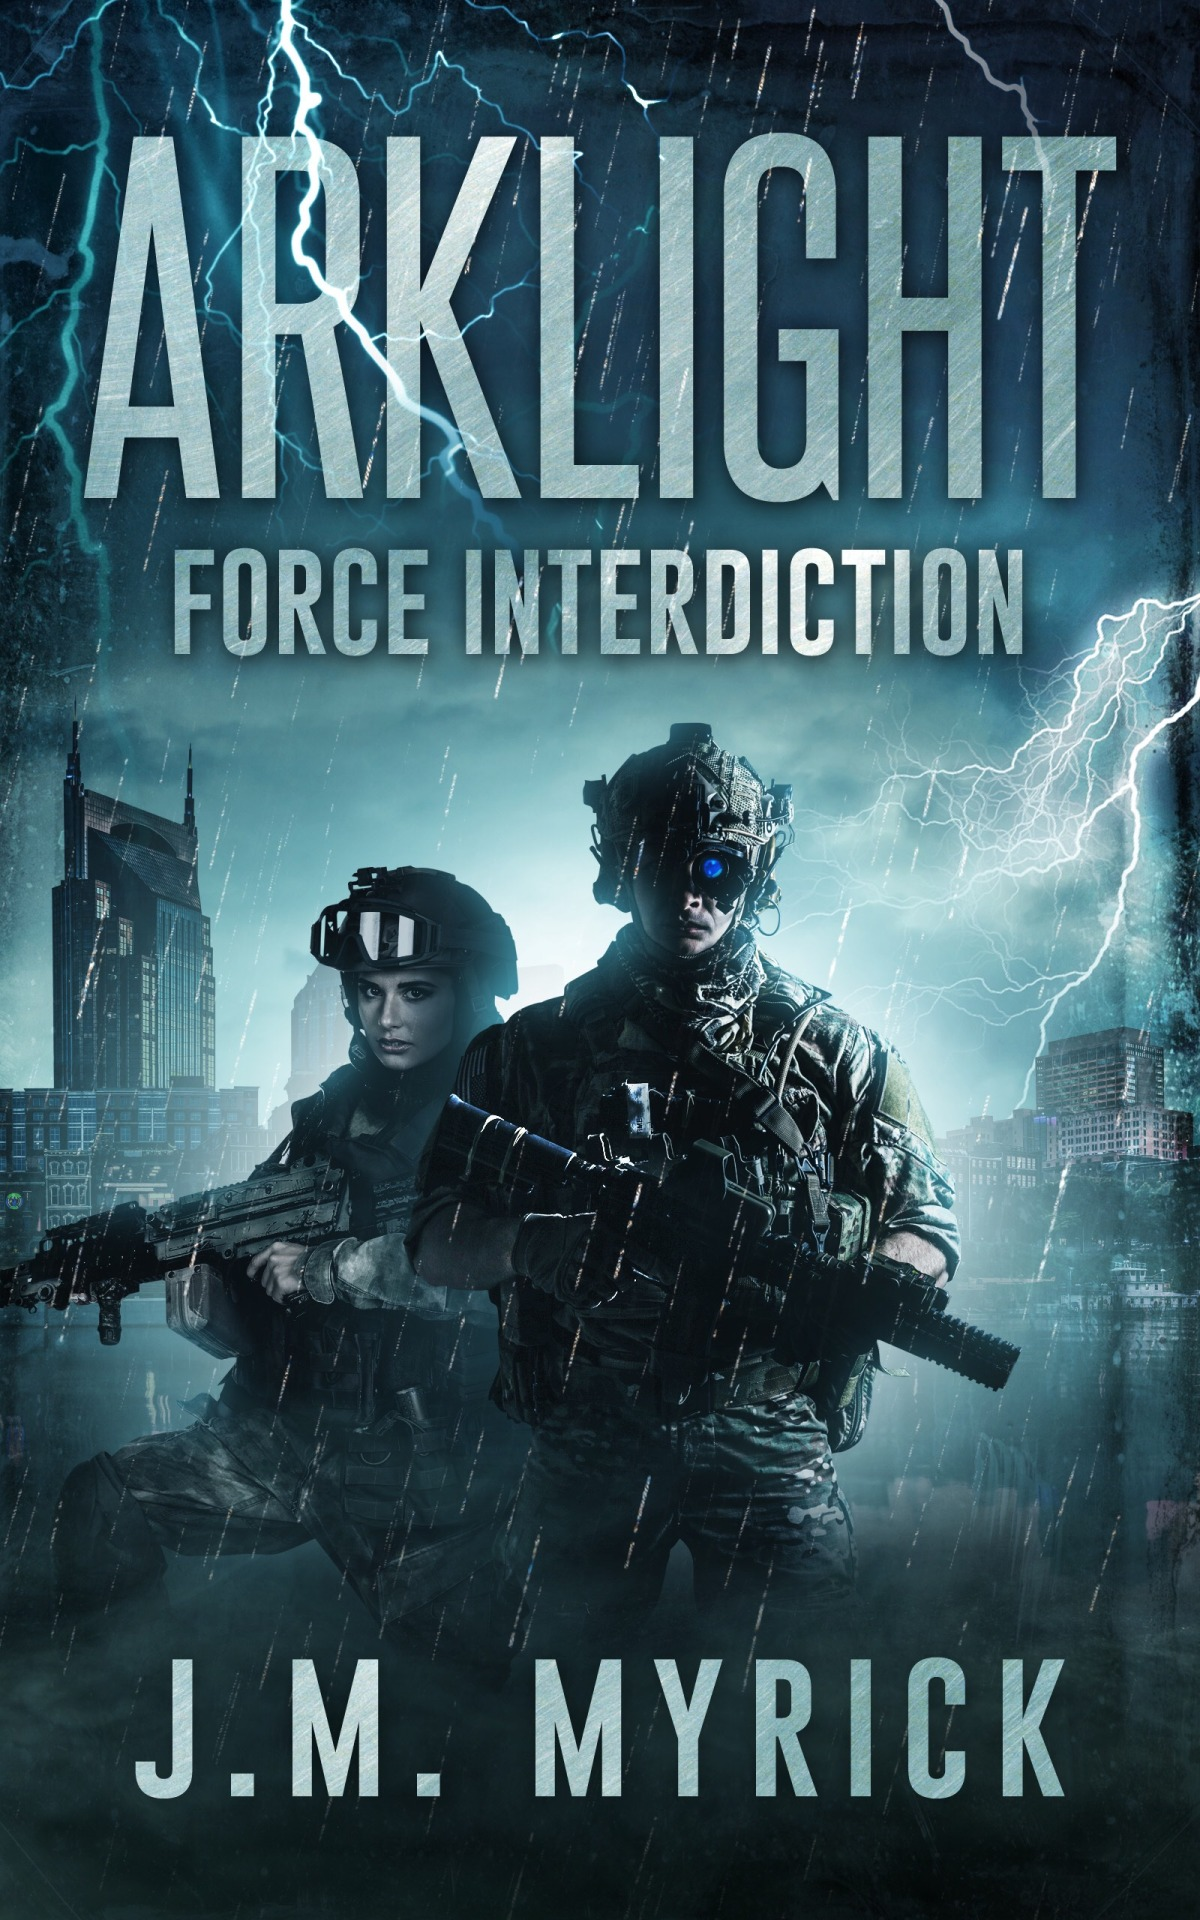 Force Interdiction Releases in 1 MONTH!